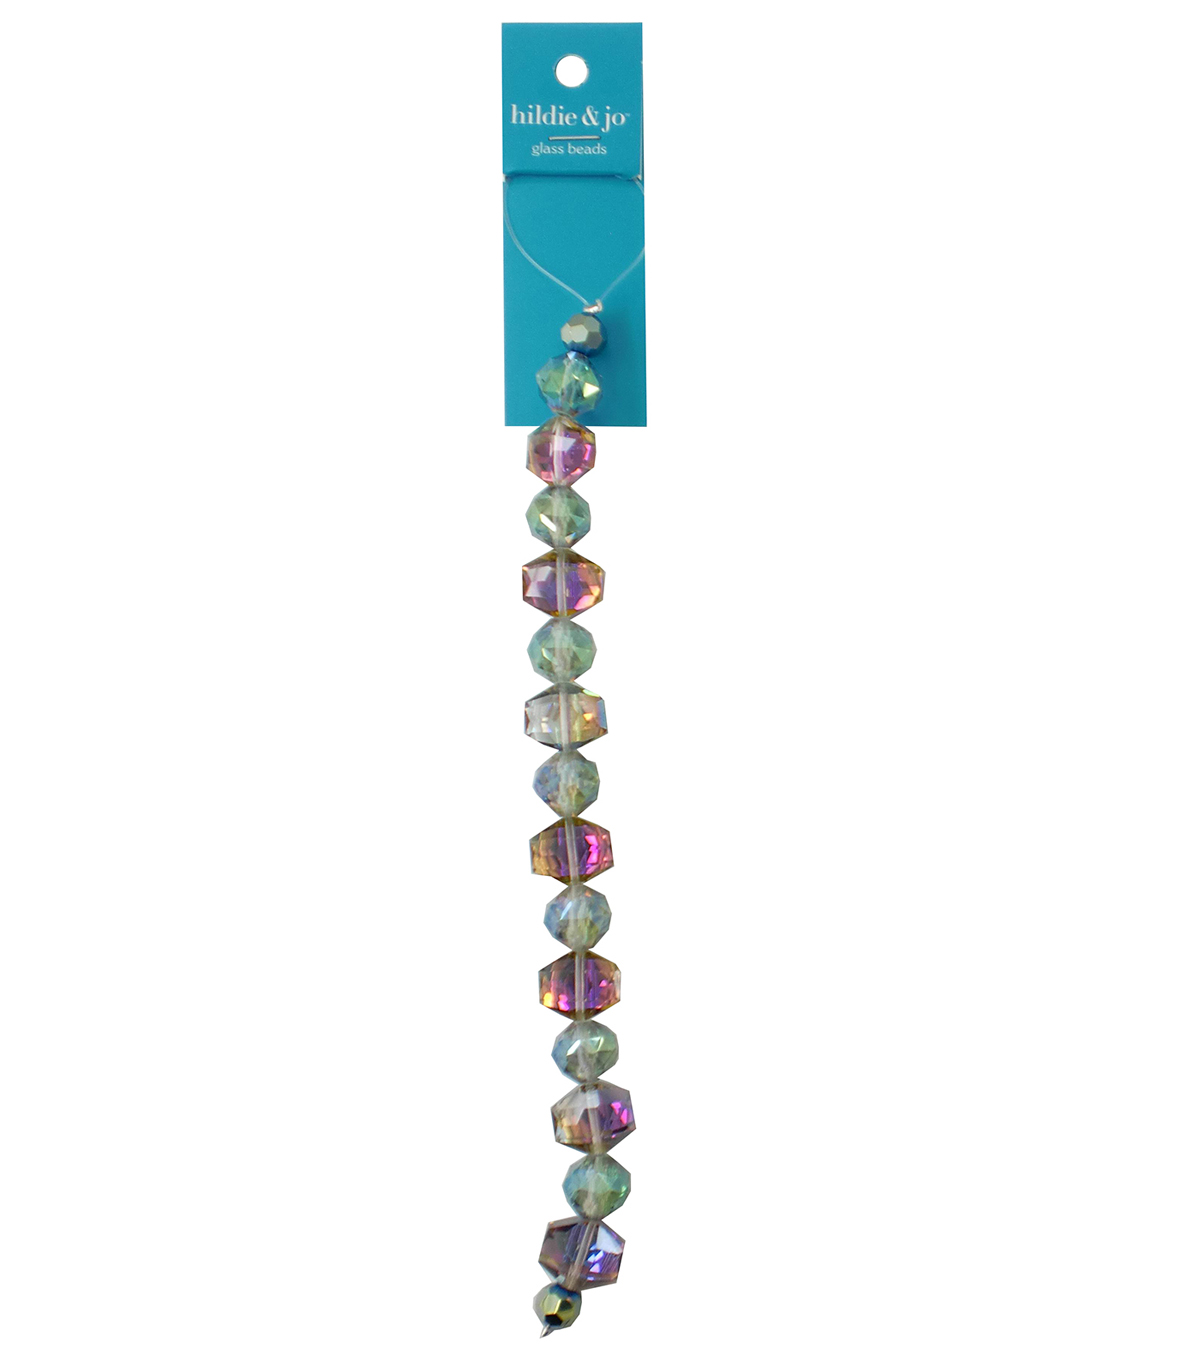 hildie & jo 7\u0027\u0027 Glass Beads Strand-Iridescent Blue